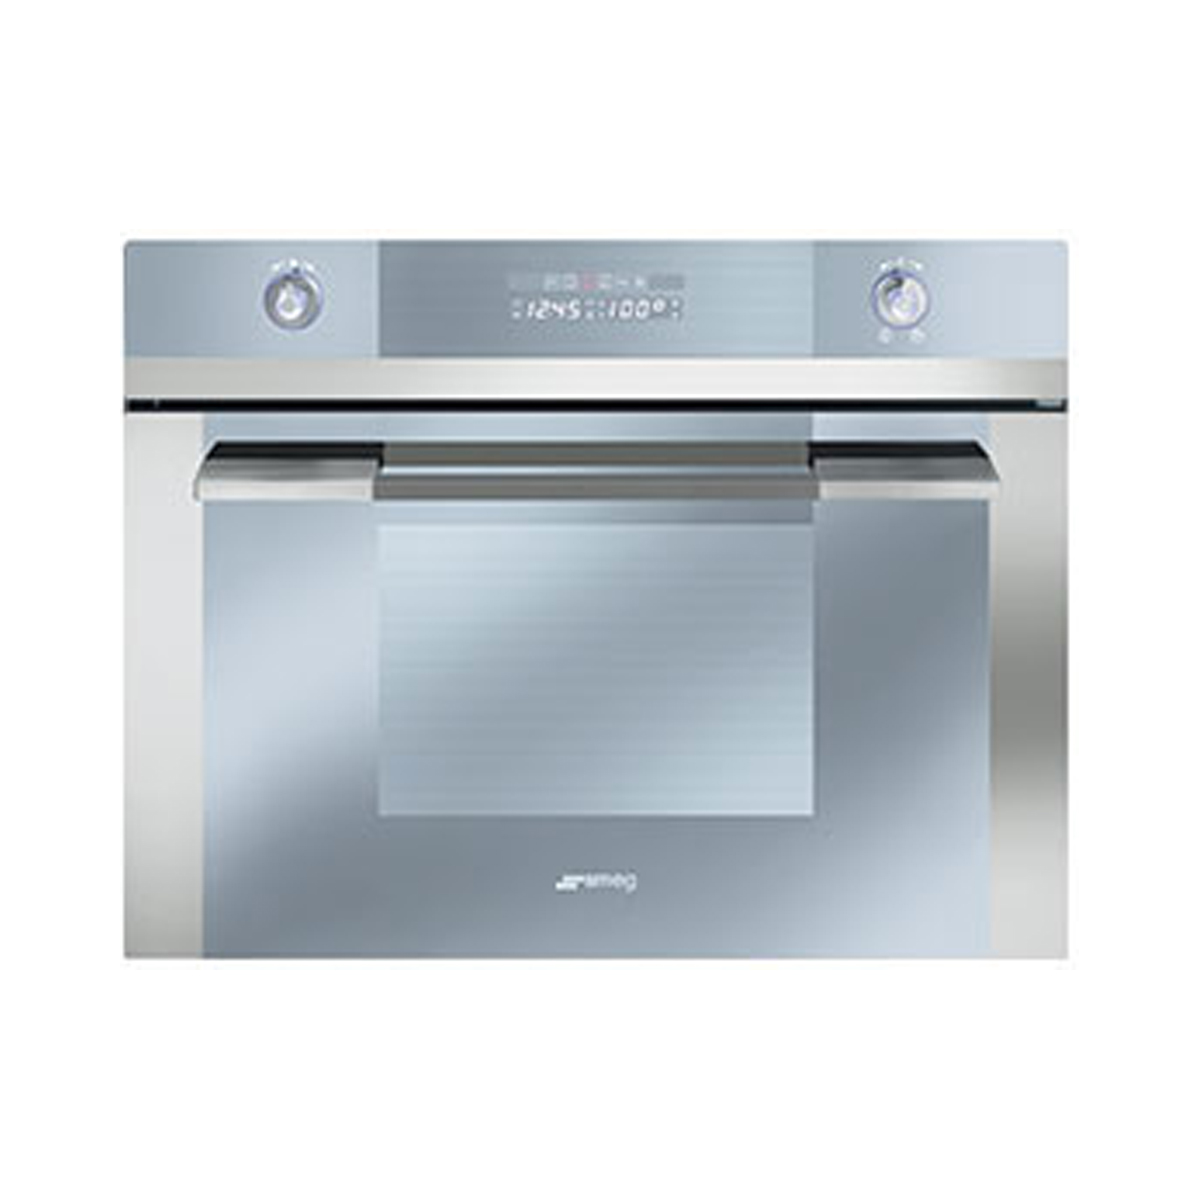 "Smeg SC45V2 45cm ""Linear series"" Steam Compact Oven"